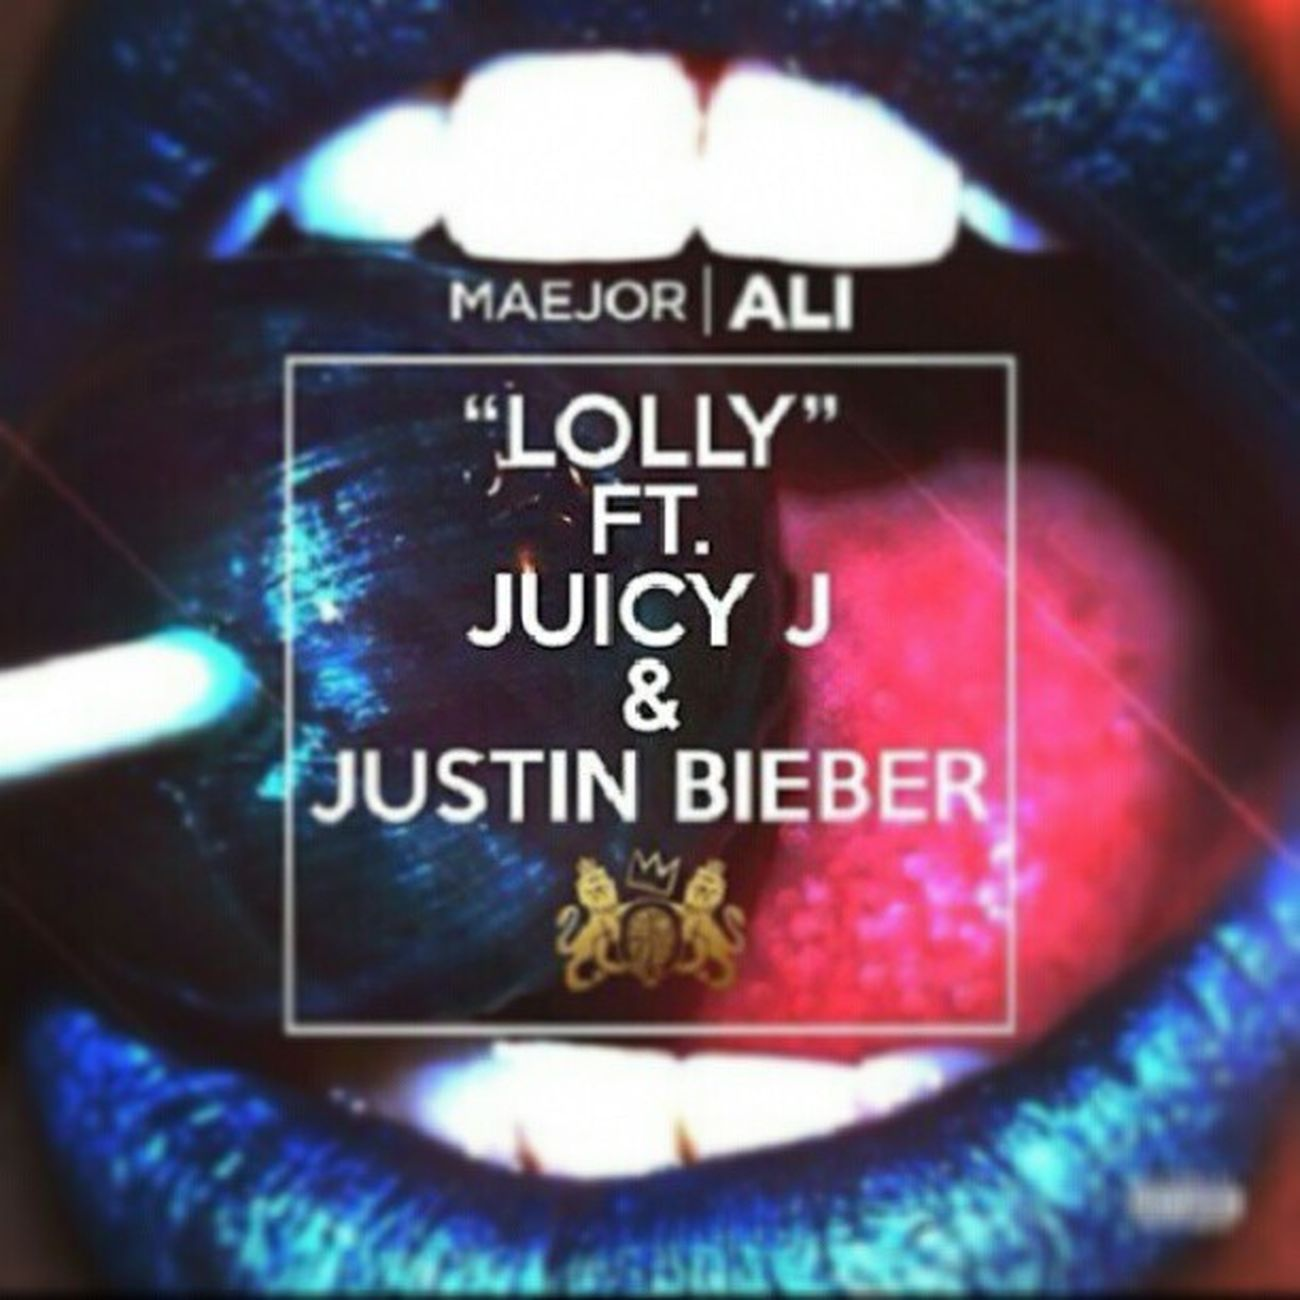 Gotta admit thats lolly is a good song where Bieber is featured :P Nowplaying Np LOL JuicyJ Music